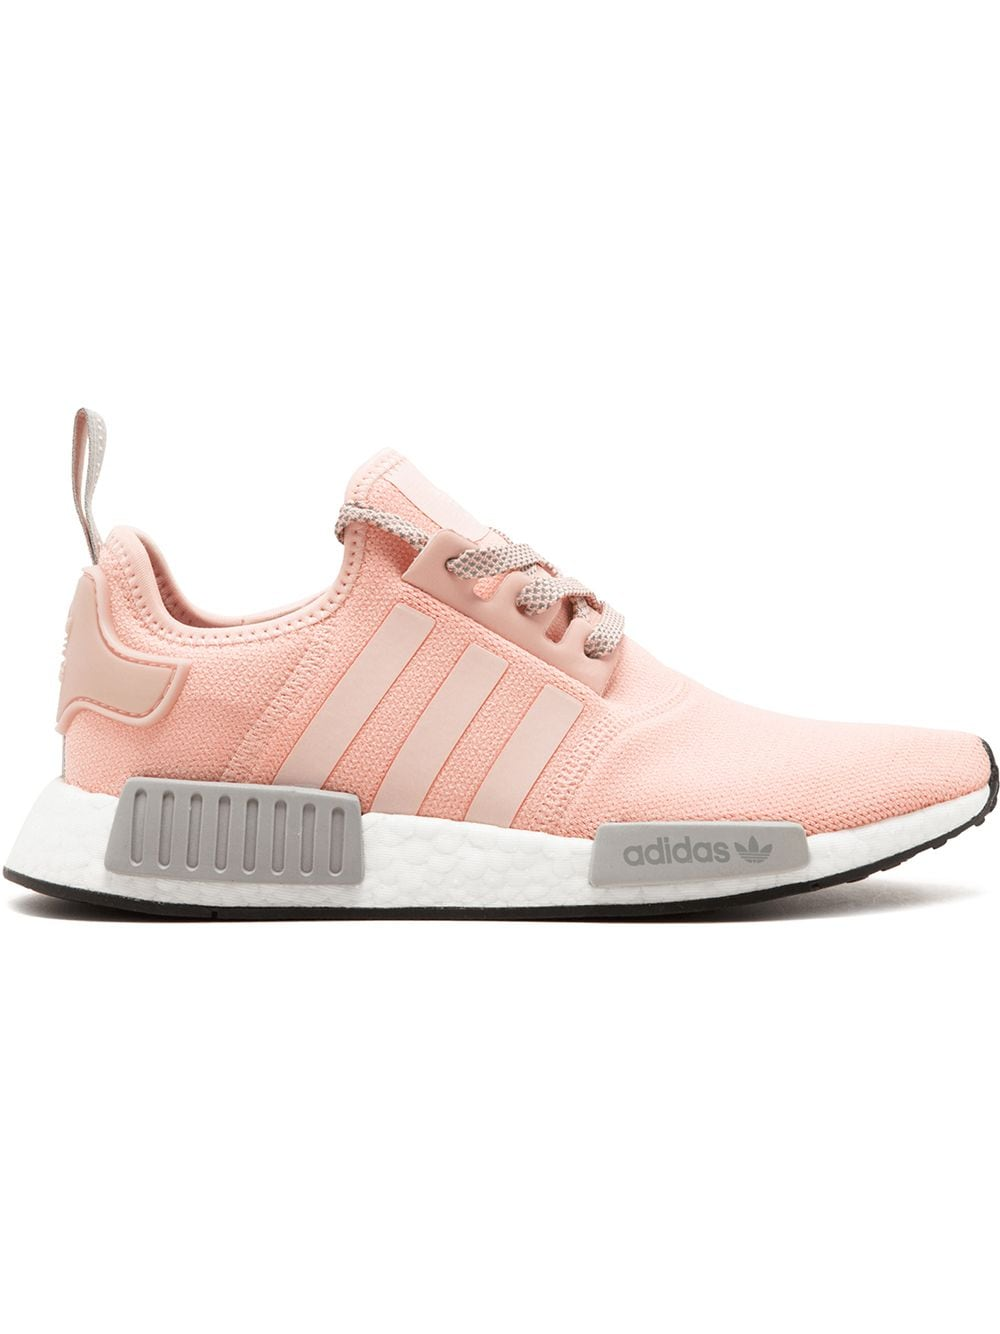 adidas NMD R1 W sneakers - PINK von adidas